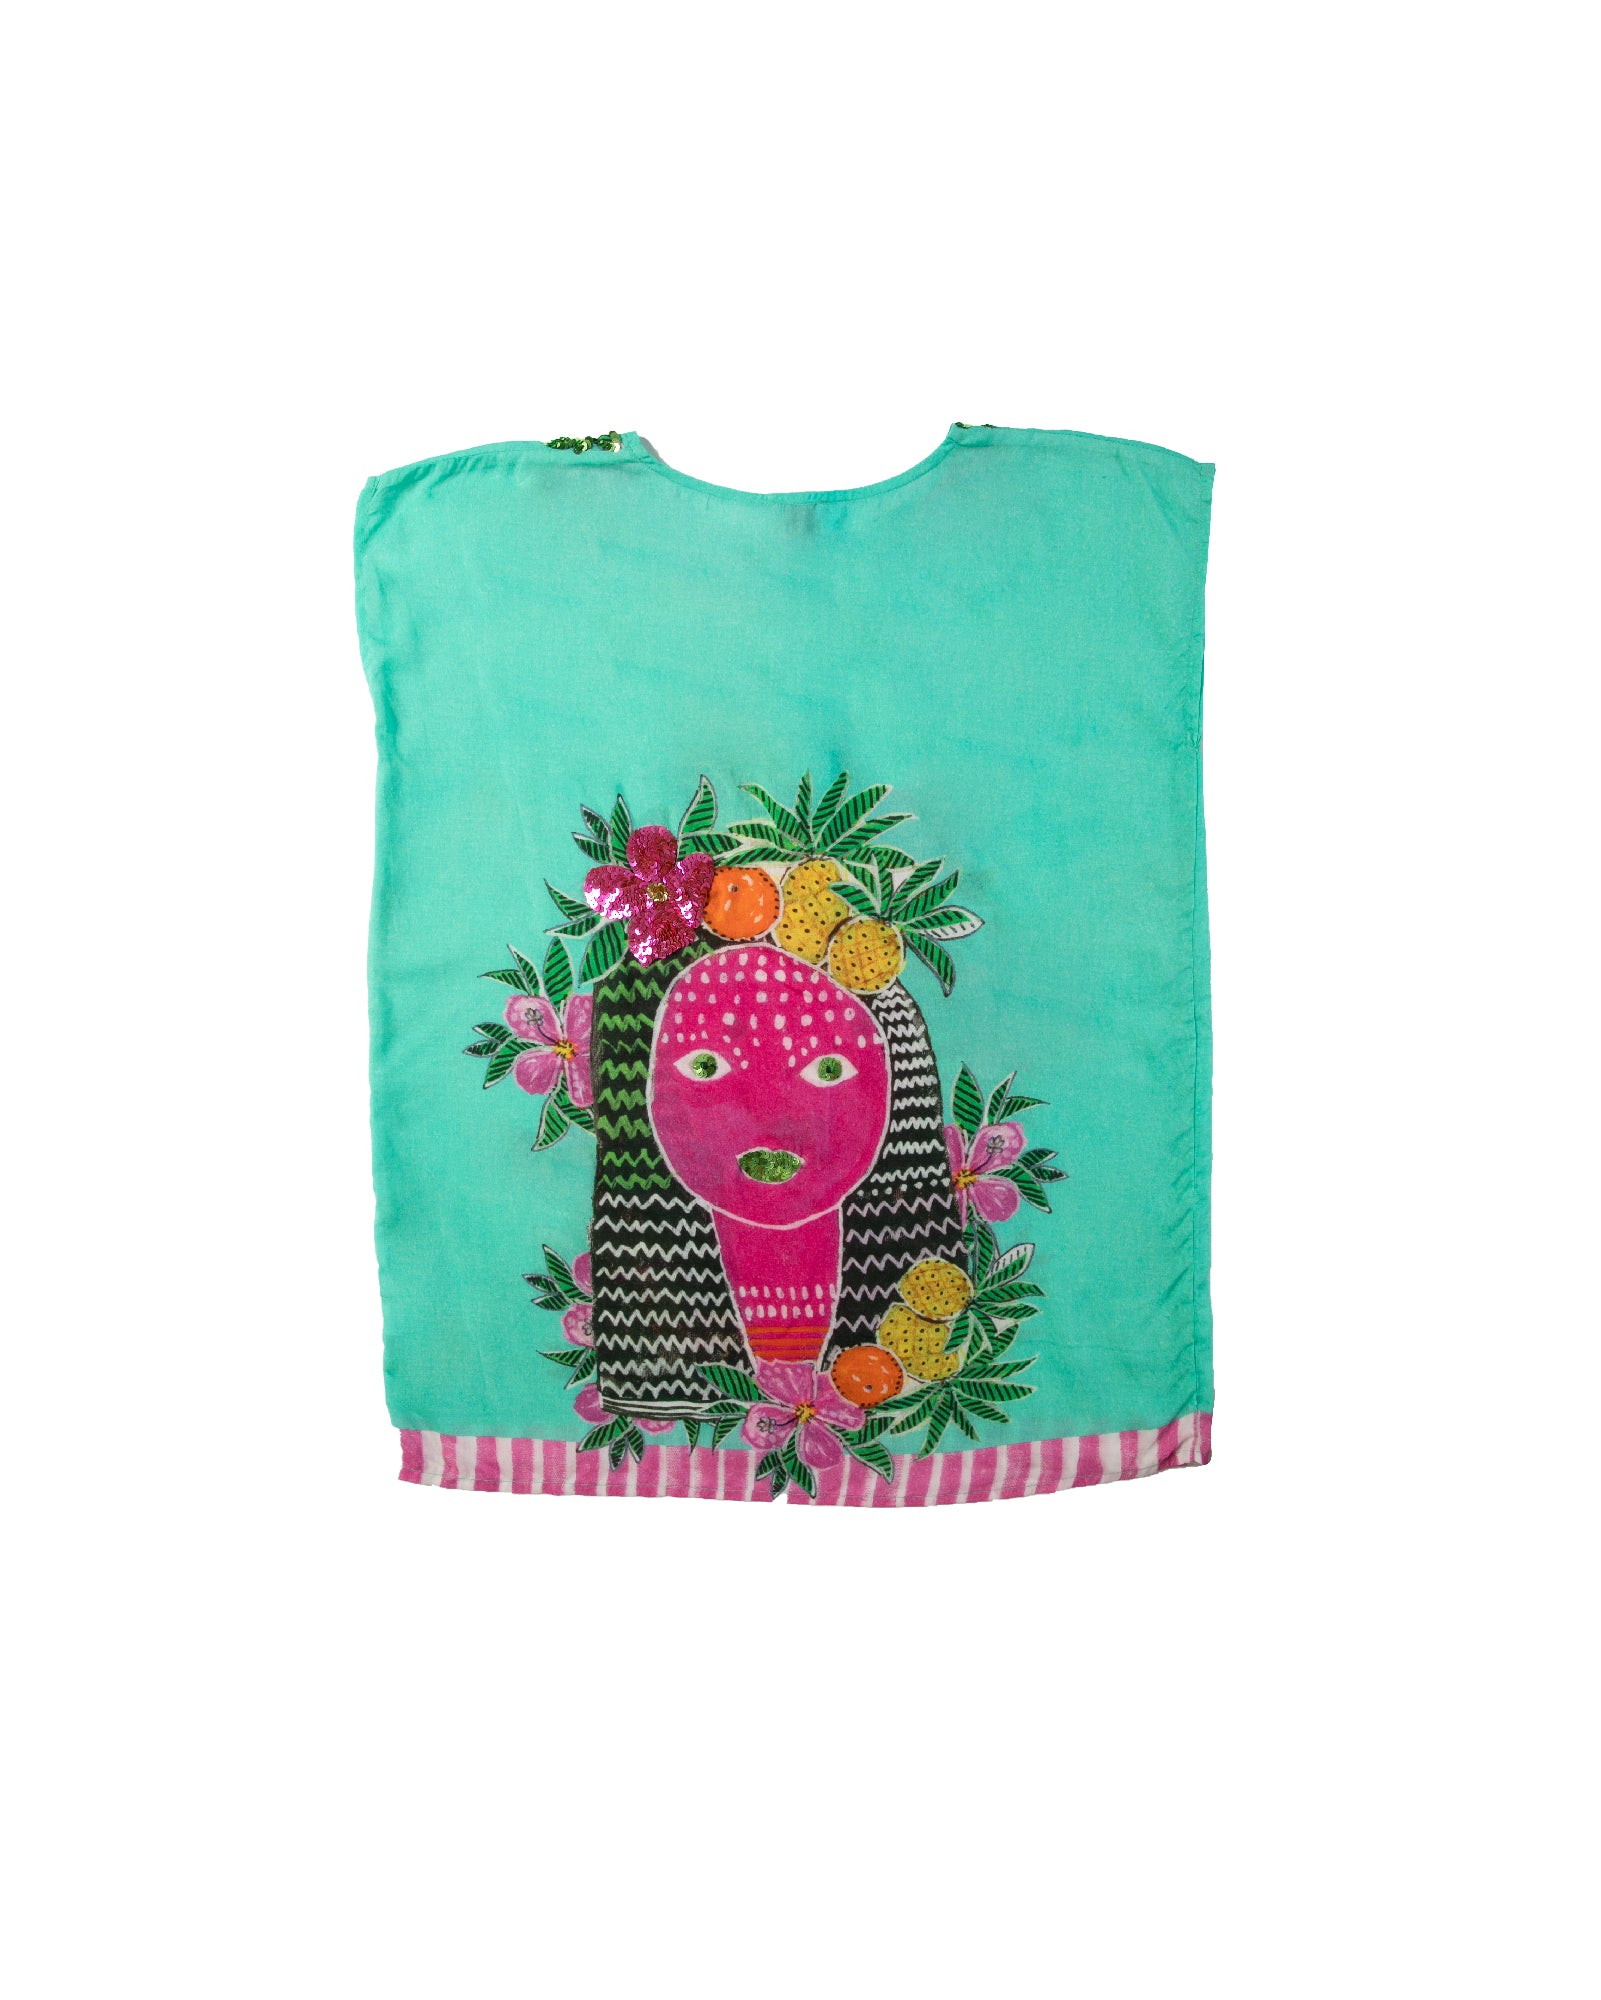 The Aztec Princess Girls Kaftan by Bonita Bambino - BACK